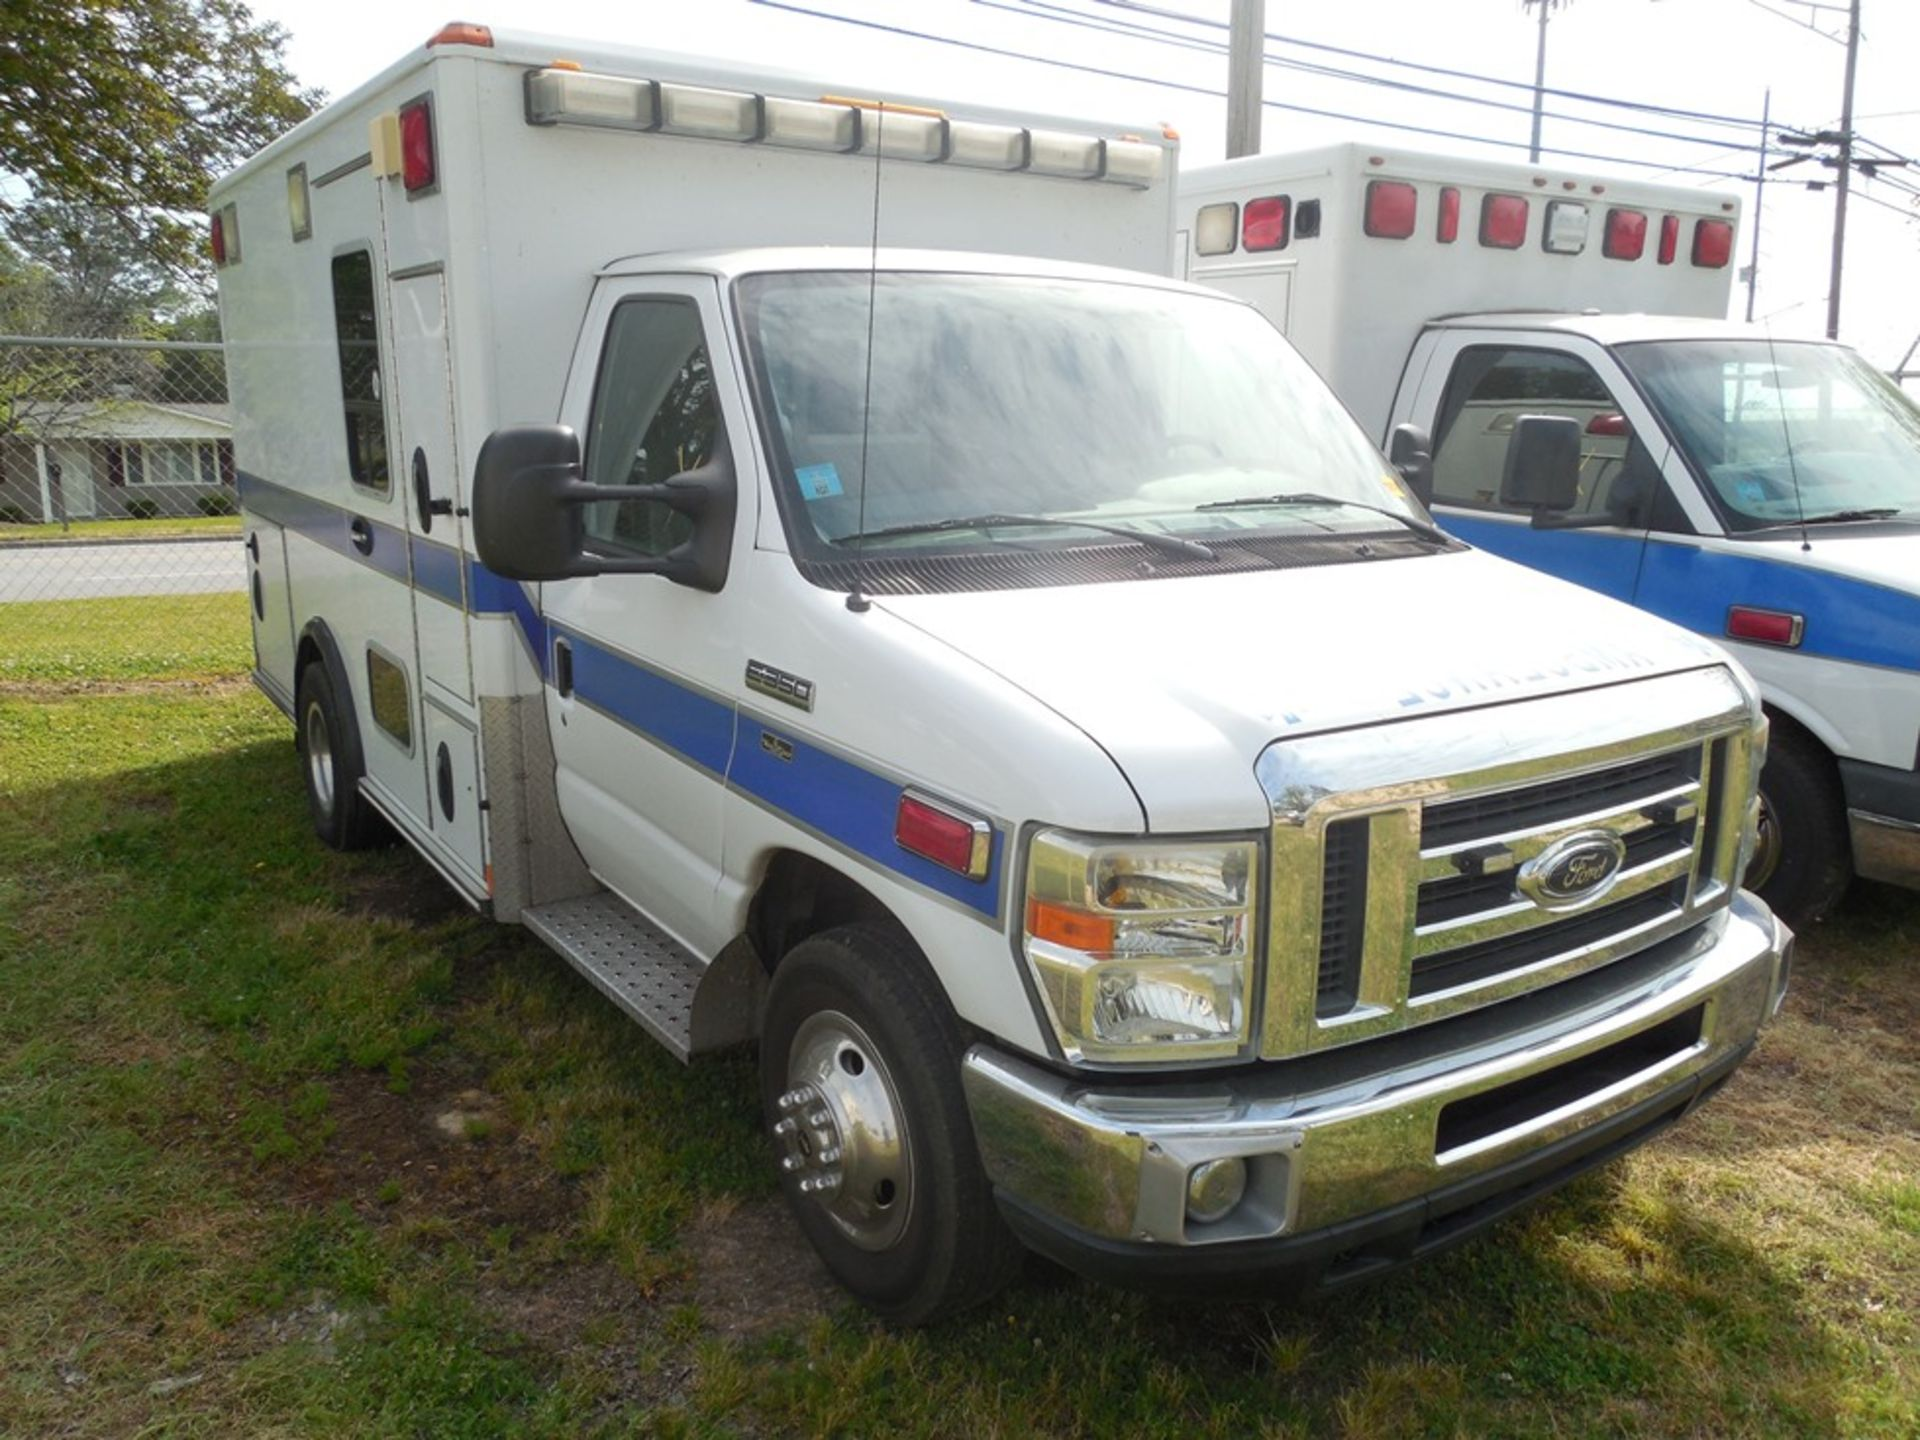 2010 Ford E350 Wheel Coach ambulance, dsl, 61,572 miles, vin# 1FDWE3FP2ADA14523 - Image 3 of 8